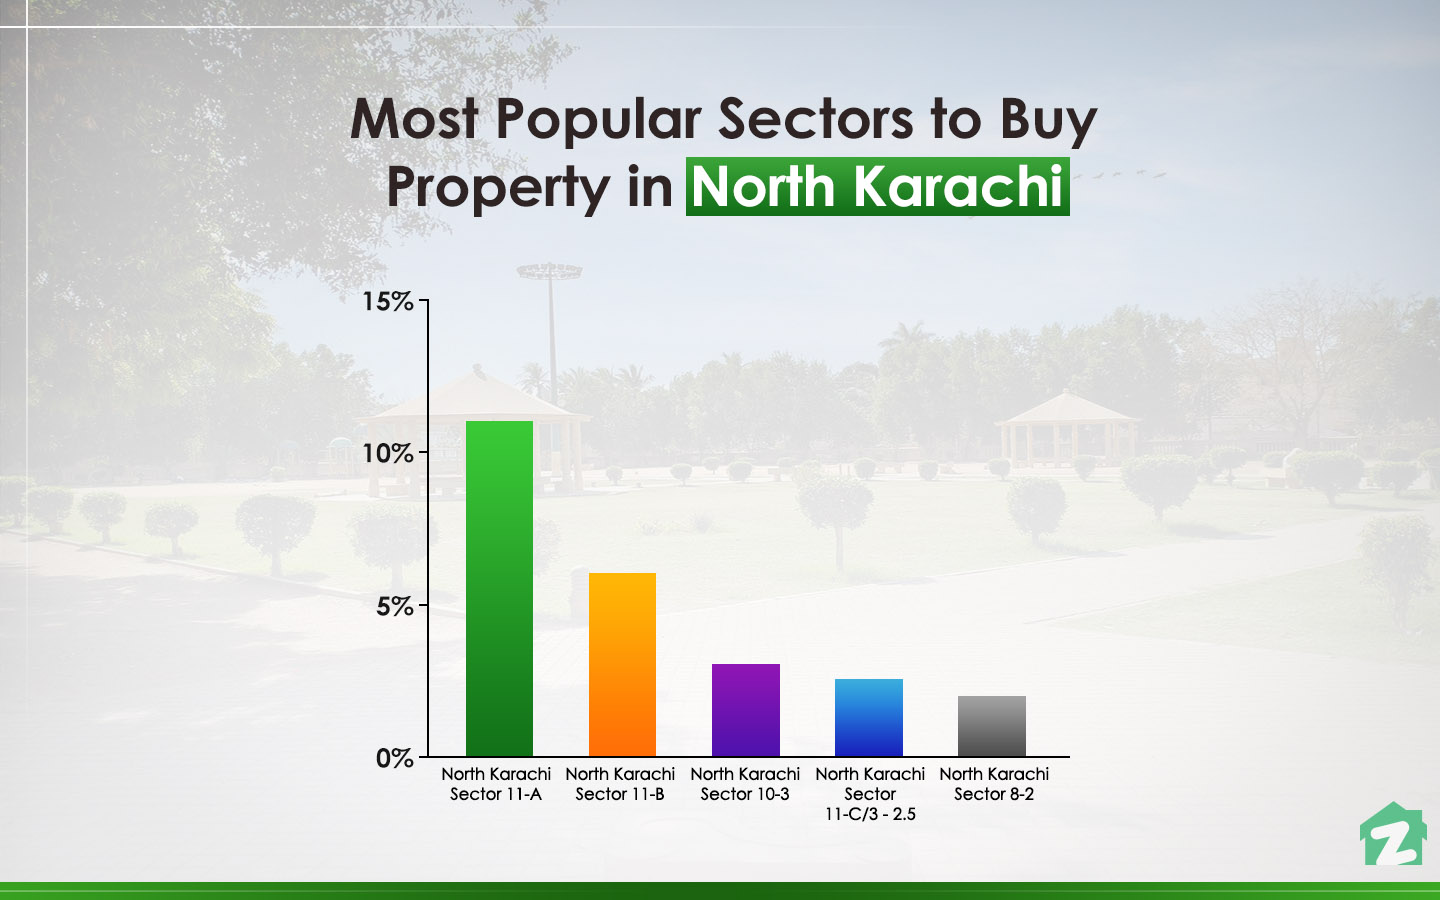 Most Popular Sectors for Buying Property in North Karachi